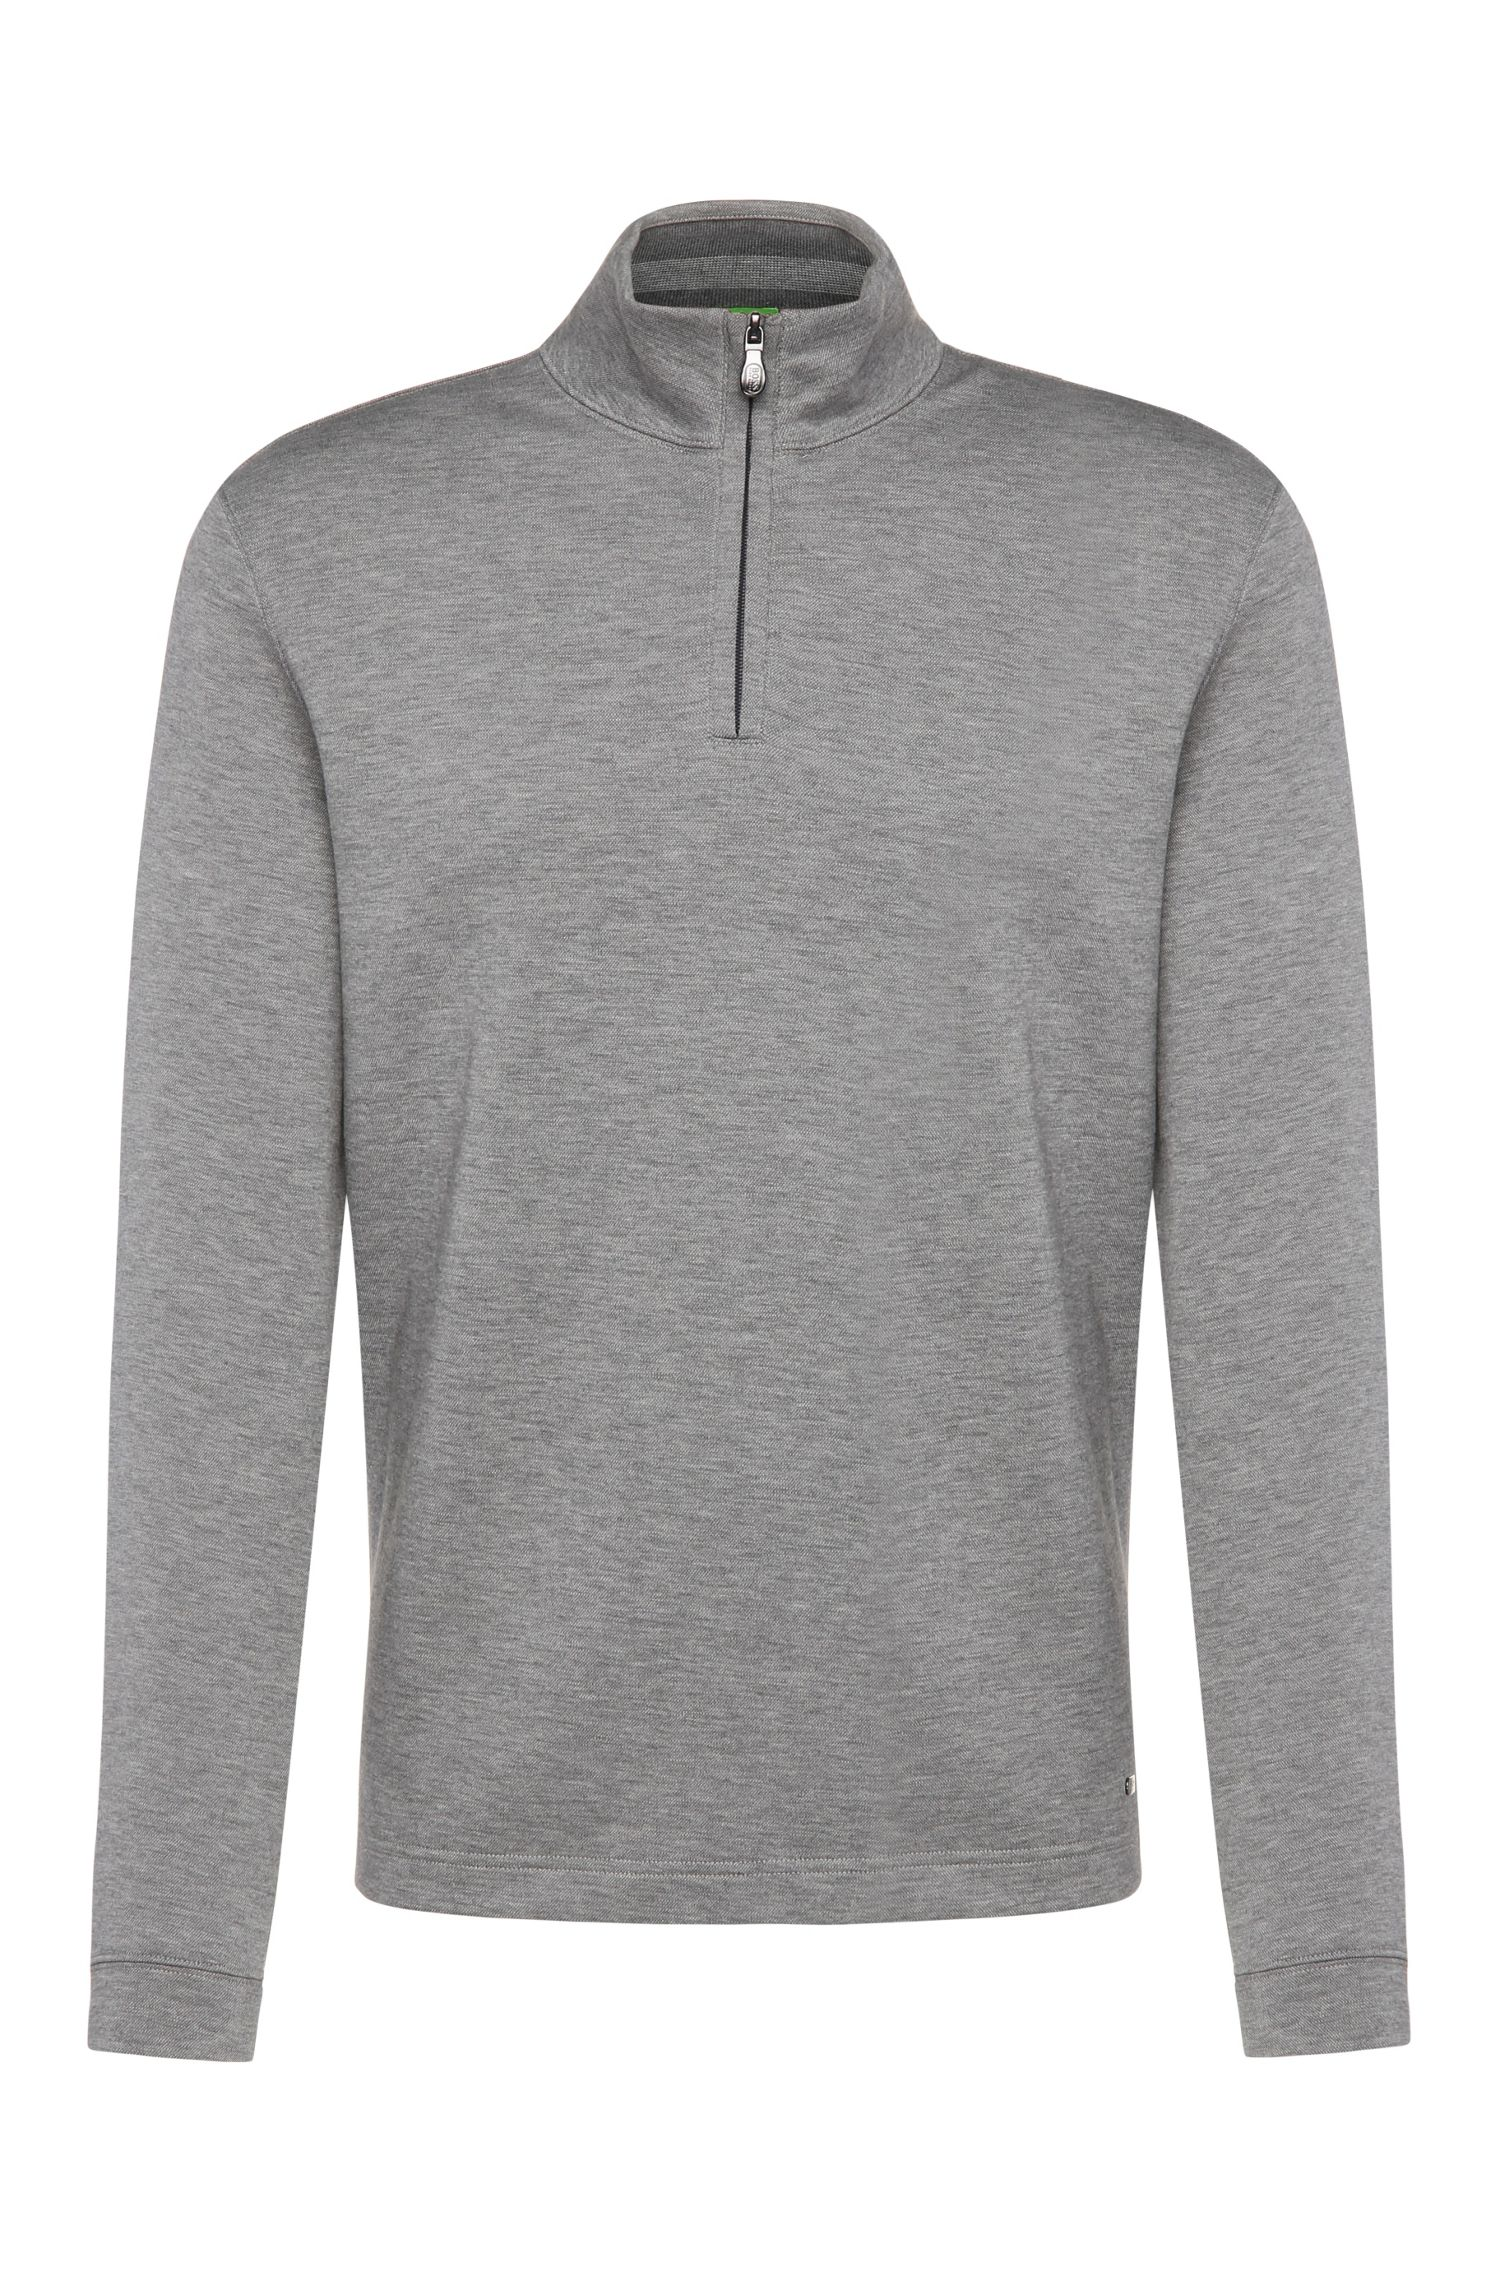 Regular-fit sweatshirt in a cotton blend: 'C-Piceno'